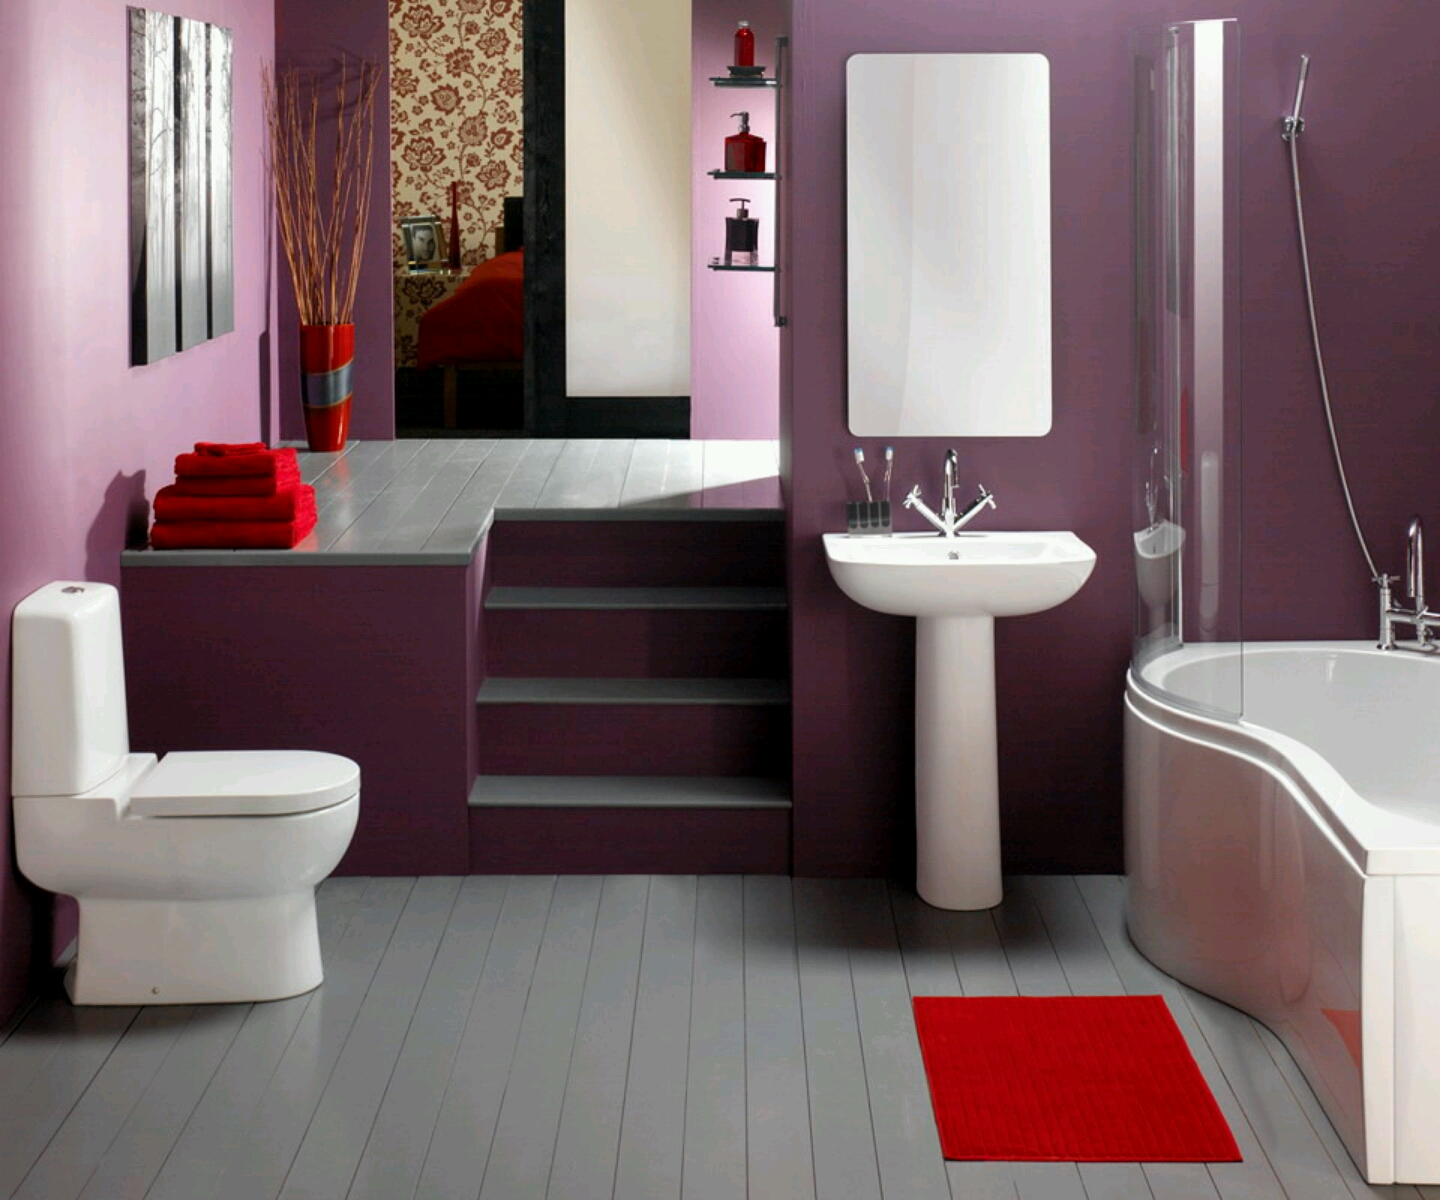 New home designs latest luxury modern bathrooms designs for Beautiful toilet designs